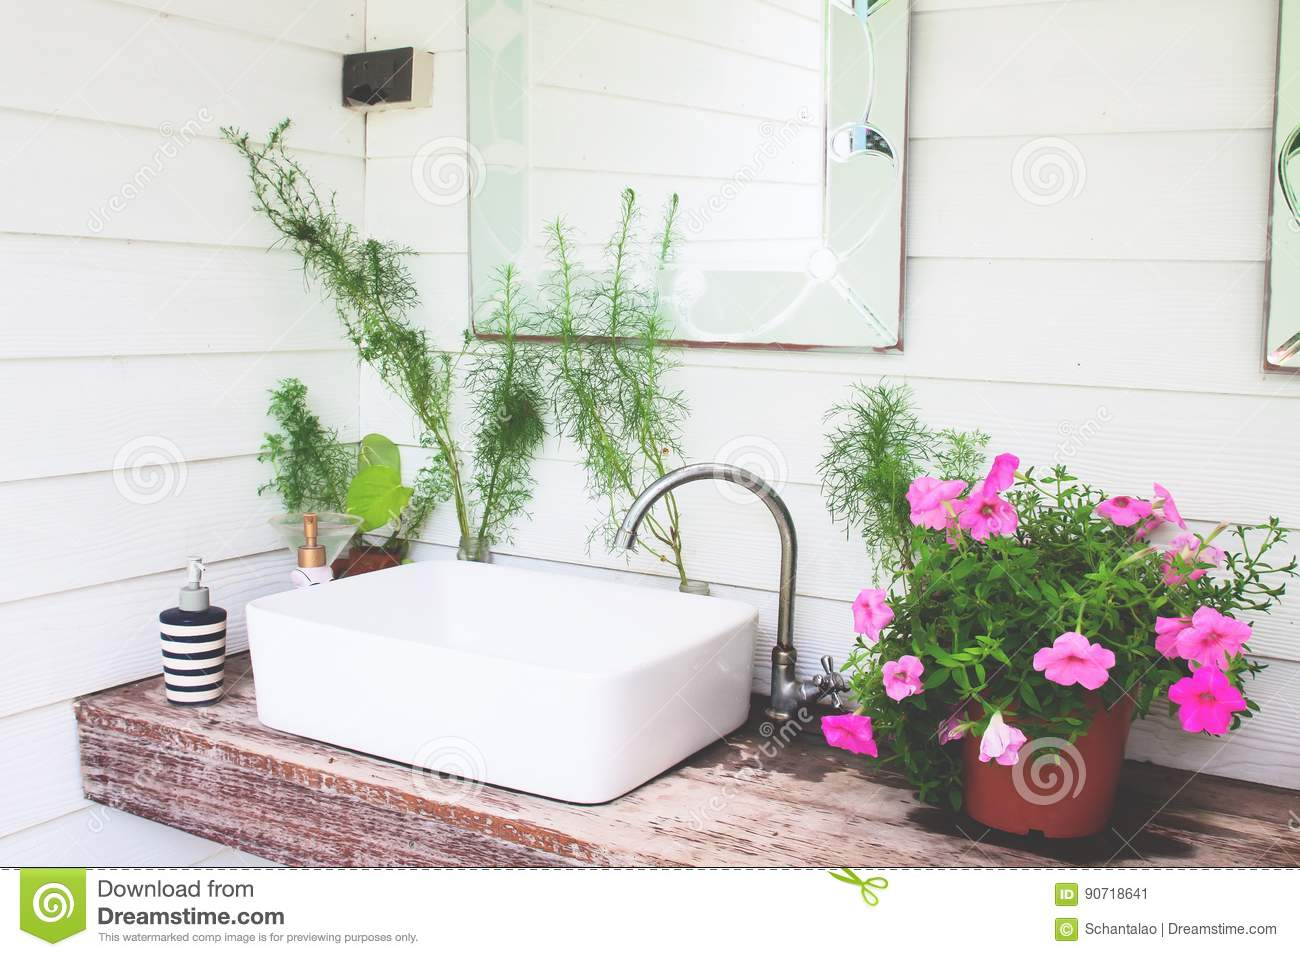 Washbasin with pink flowers in home garden, White and beautiful